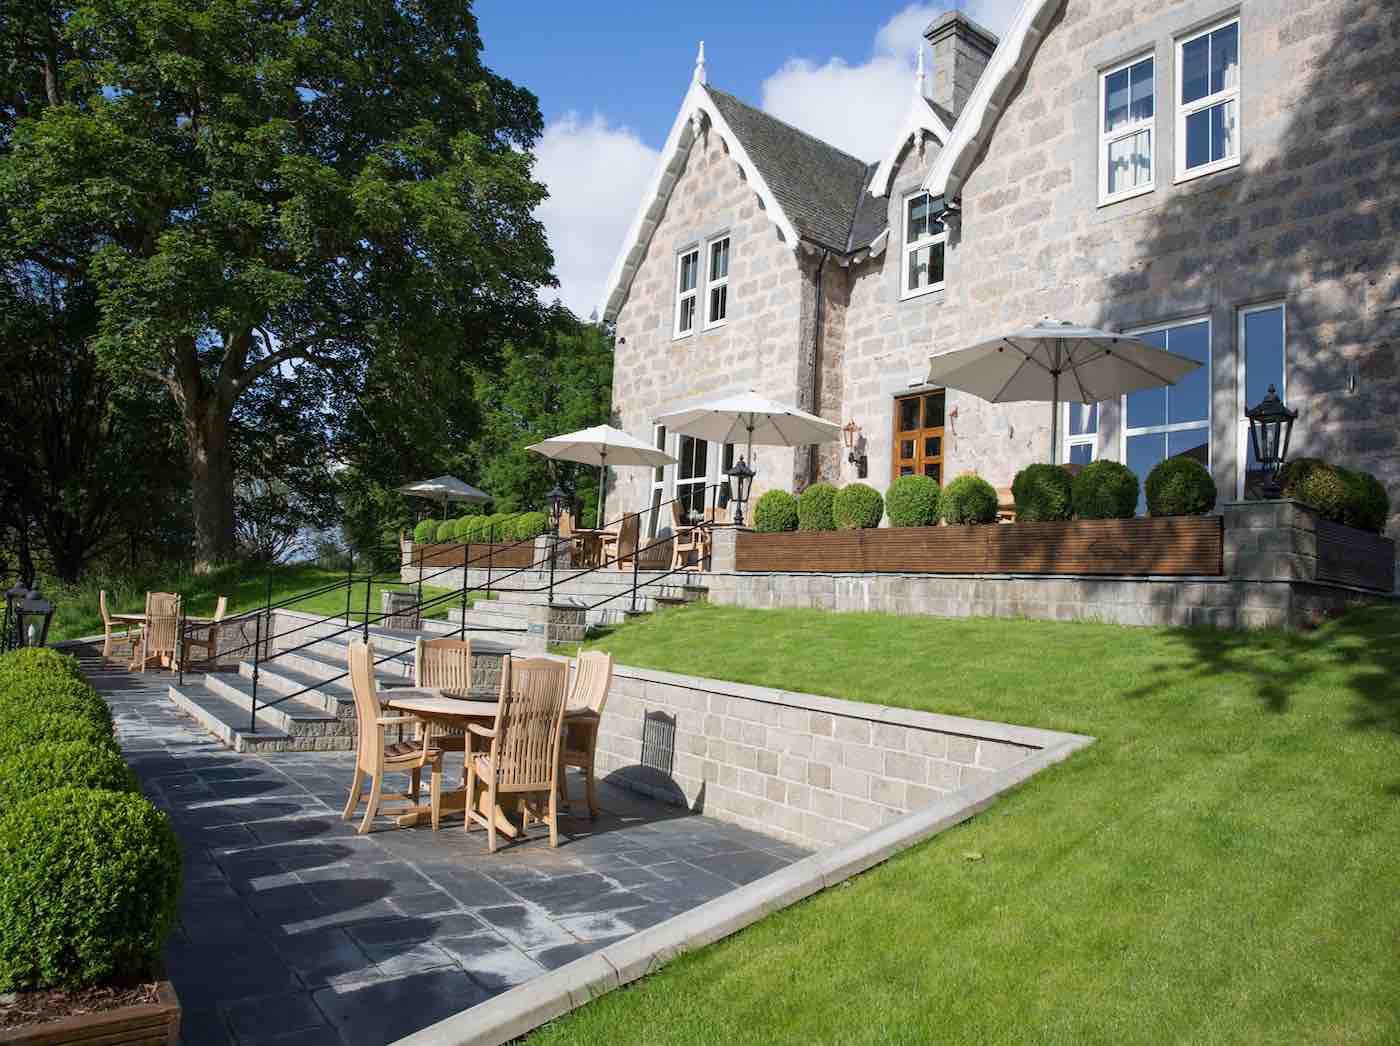 Muckrach Country House Hotel Terrace